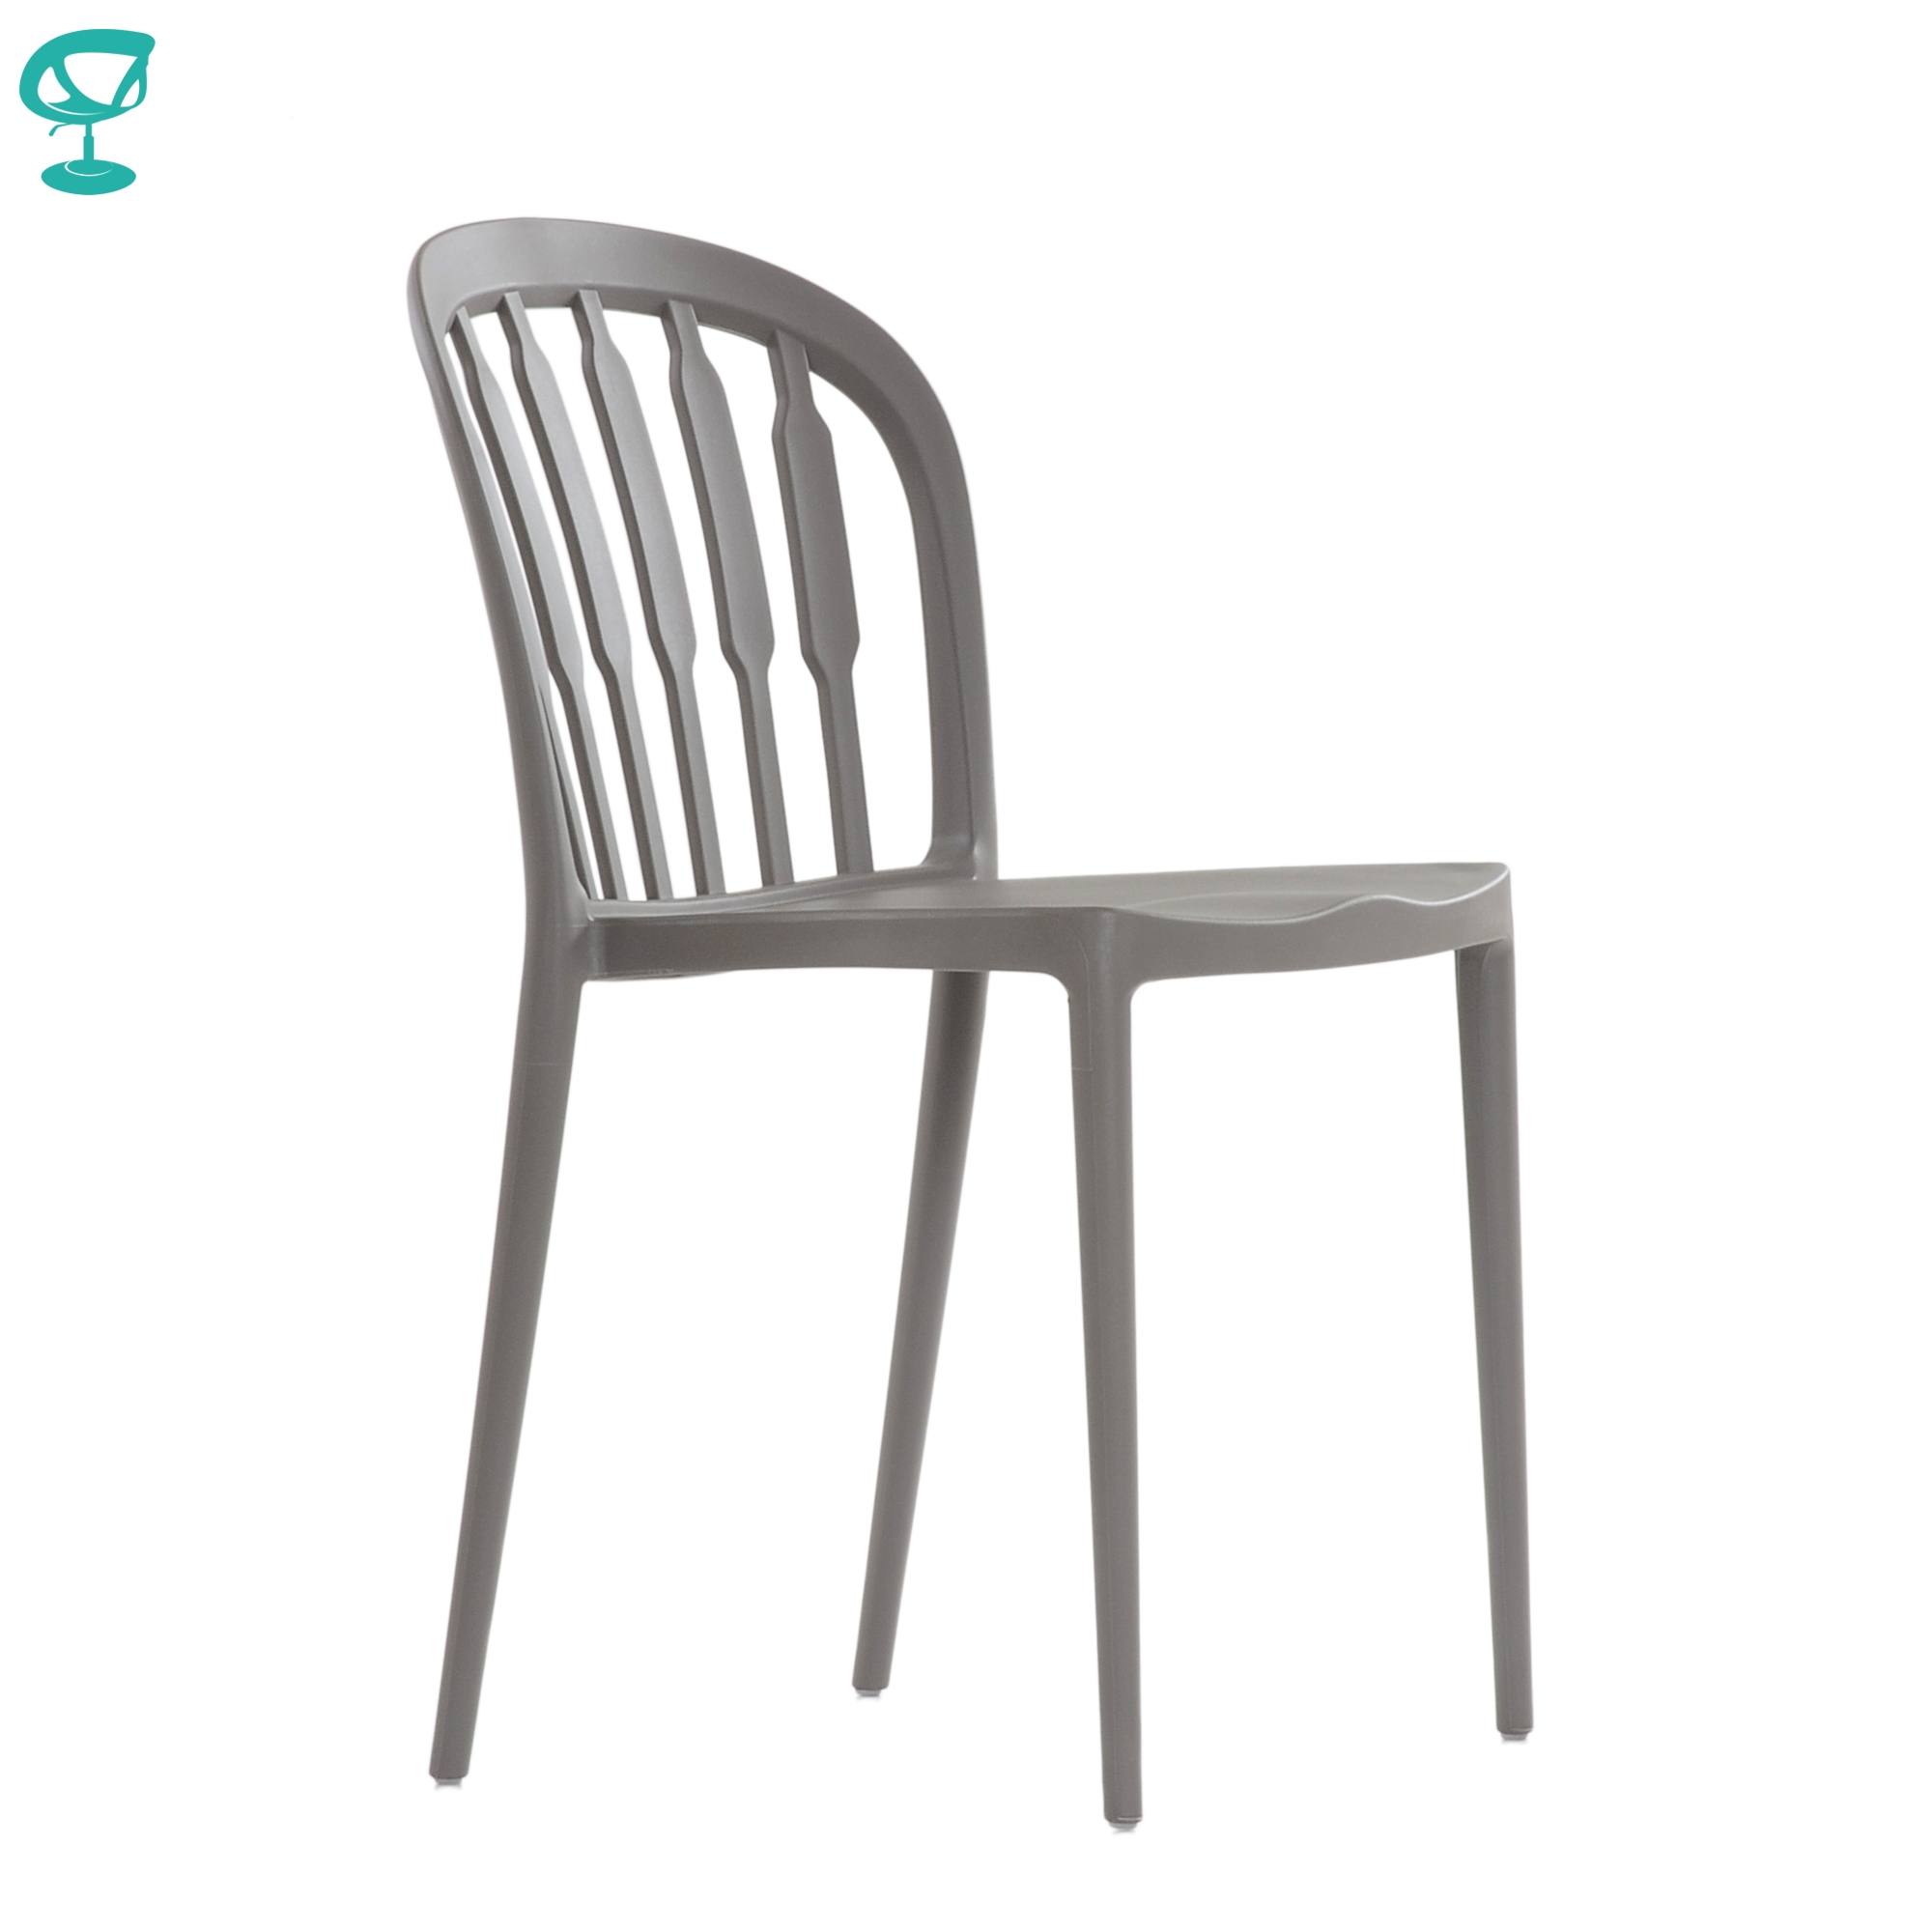 95720 Barneo N-216 Plastic Kitchen Interior Stool Chair Chair Kitchen Furniture Beige-gray Free Shipping In Russia